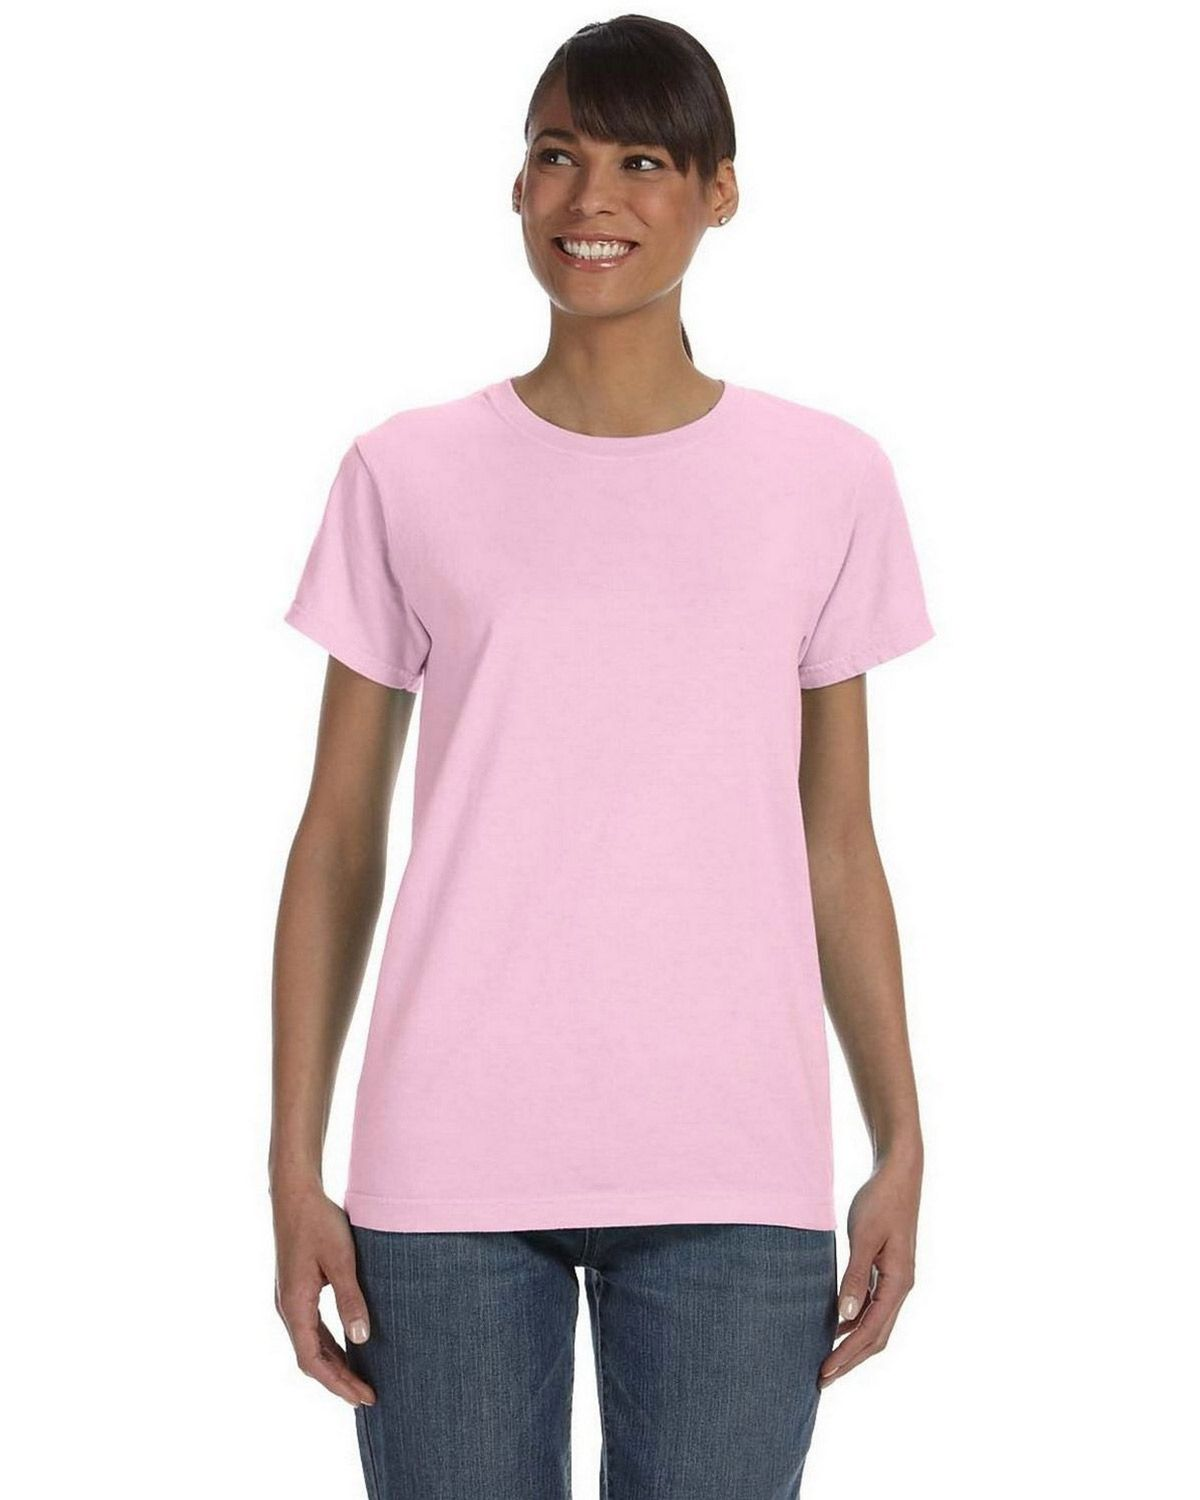 Ringspun T Shirt >> Buy Comfort Colors C3333 Womens Ringspun T Shirt